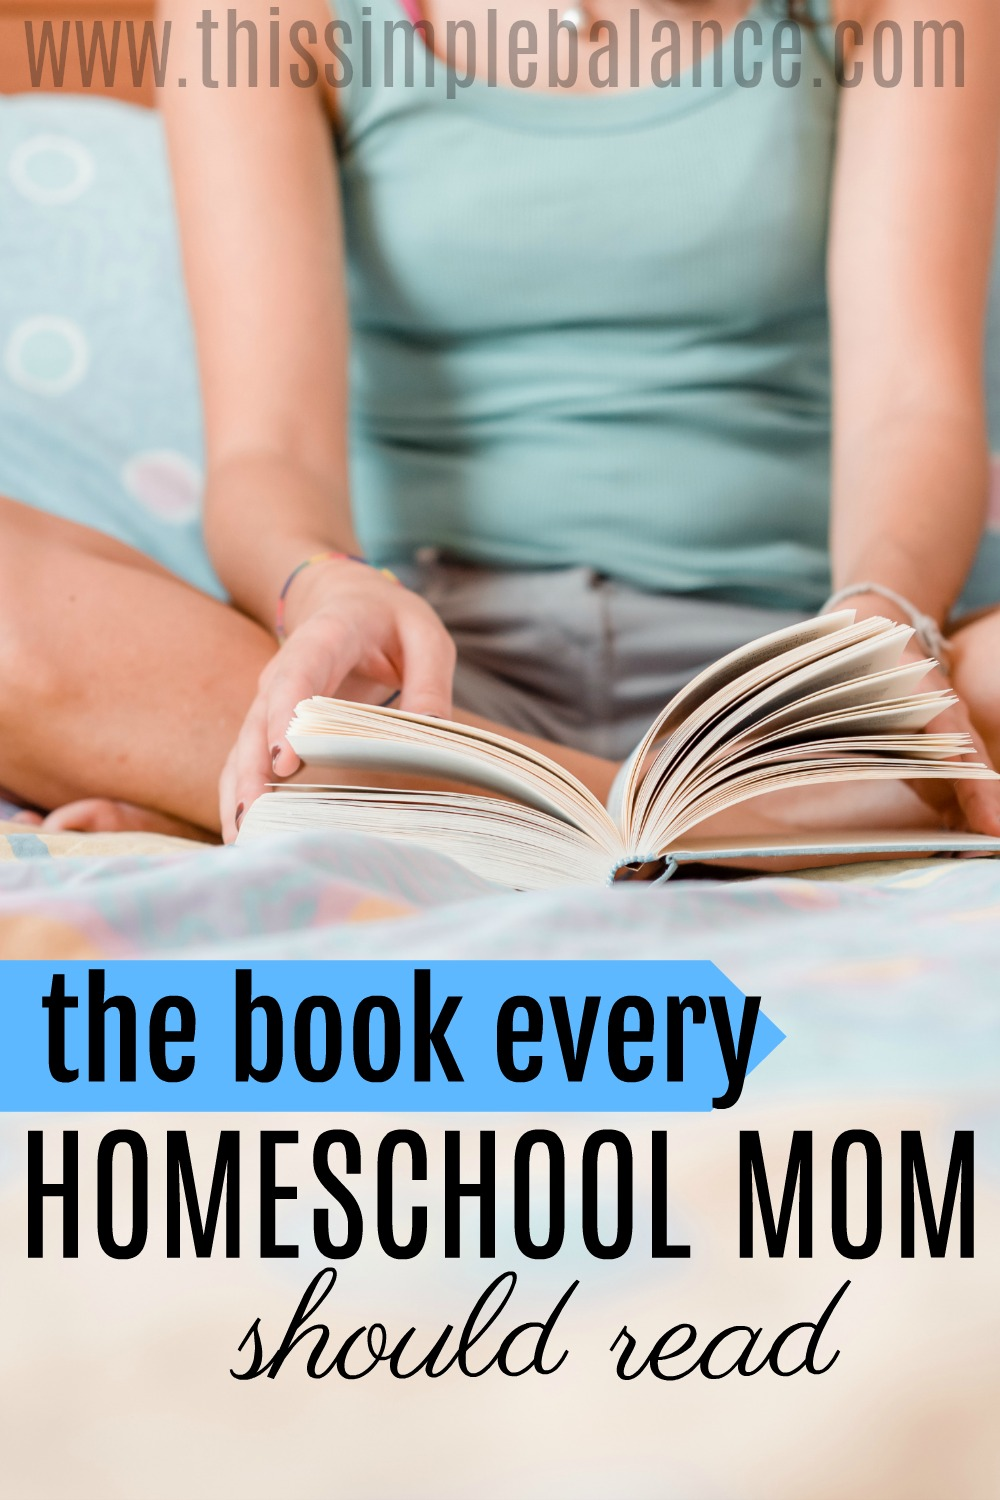 Do you need a quick, inexpensive homeschool book for moms to help you answer the two most important questions every homeschool mom needs to answer? Learn what book I read over and over again this past homeschool year and why you should consider reading it, too.